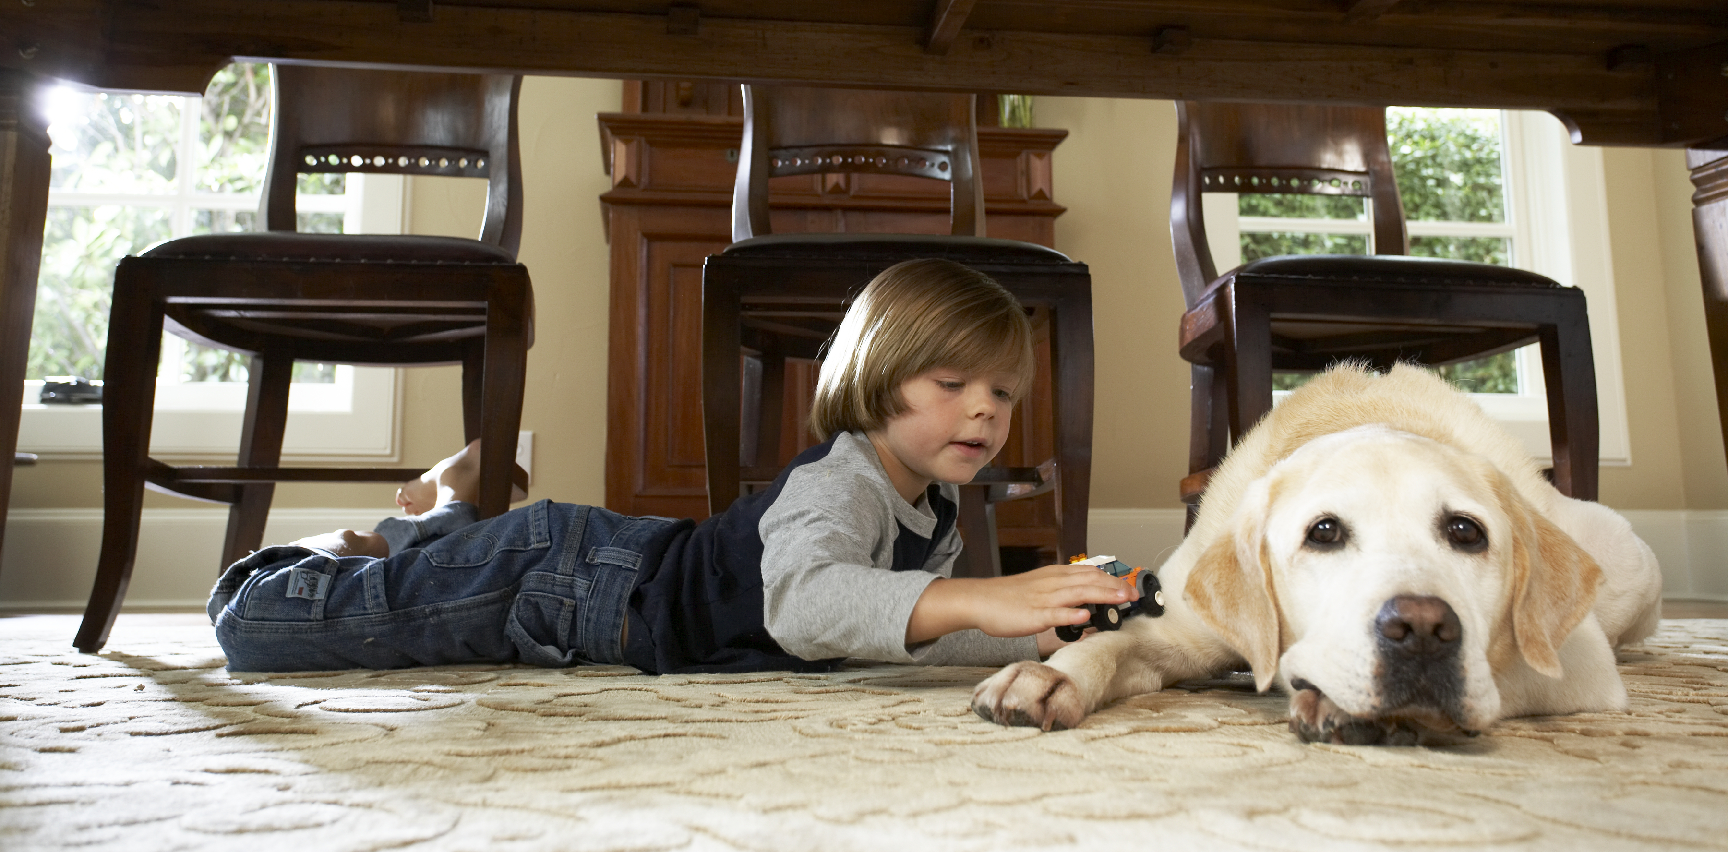 Keep Your Family Comfortable With A Properly Functioning Heating & Cooling System